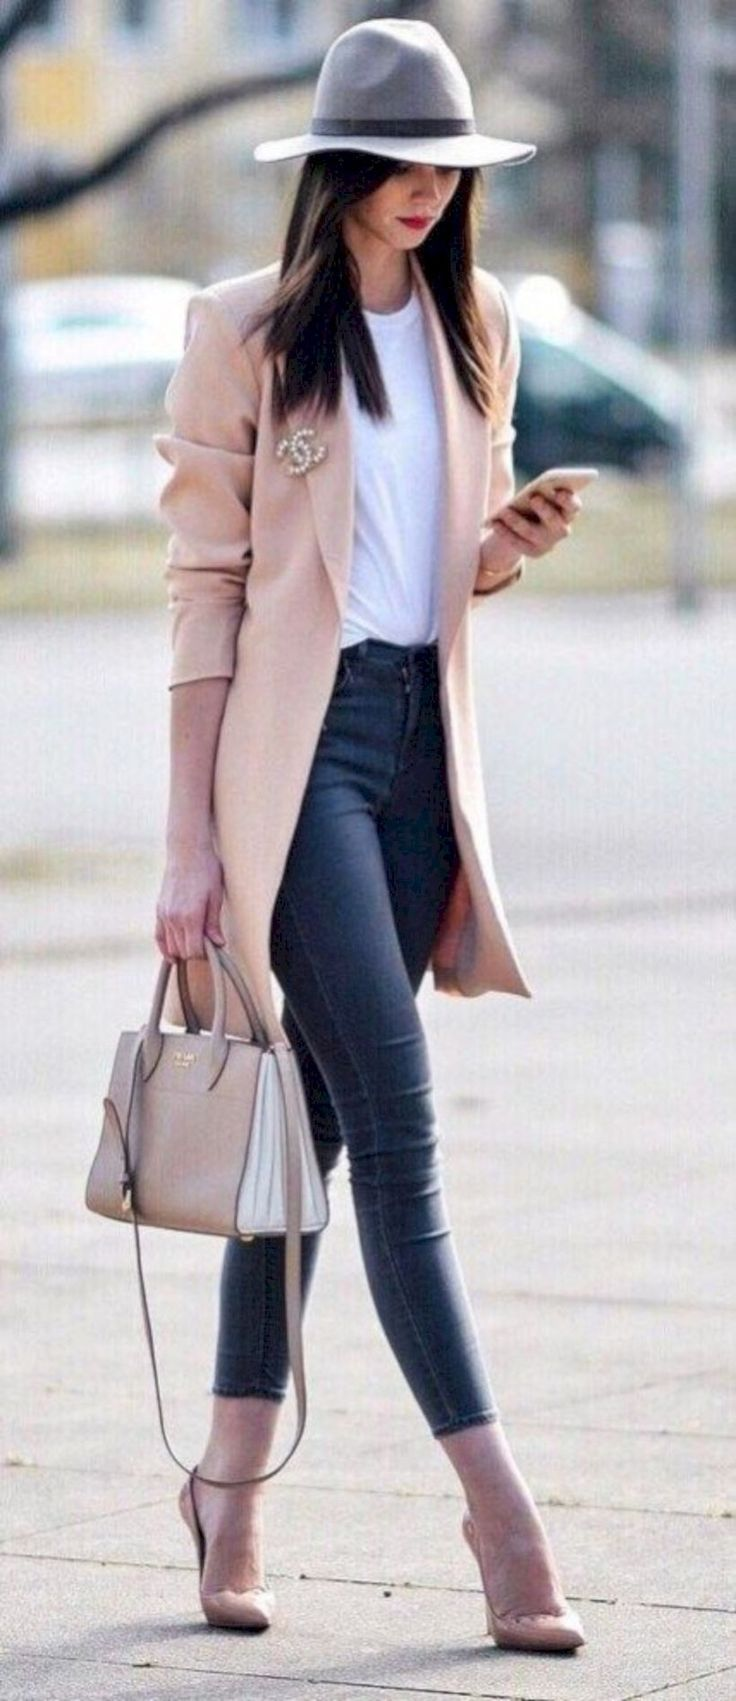 best classy outfit ideas for women favorite fashions